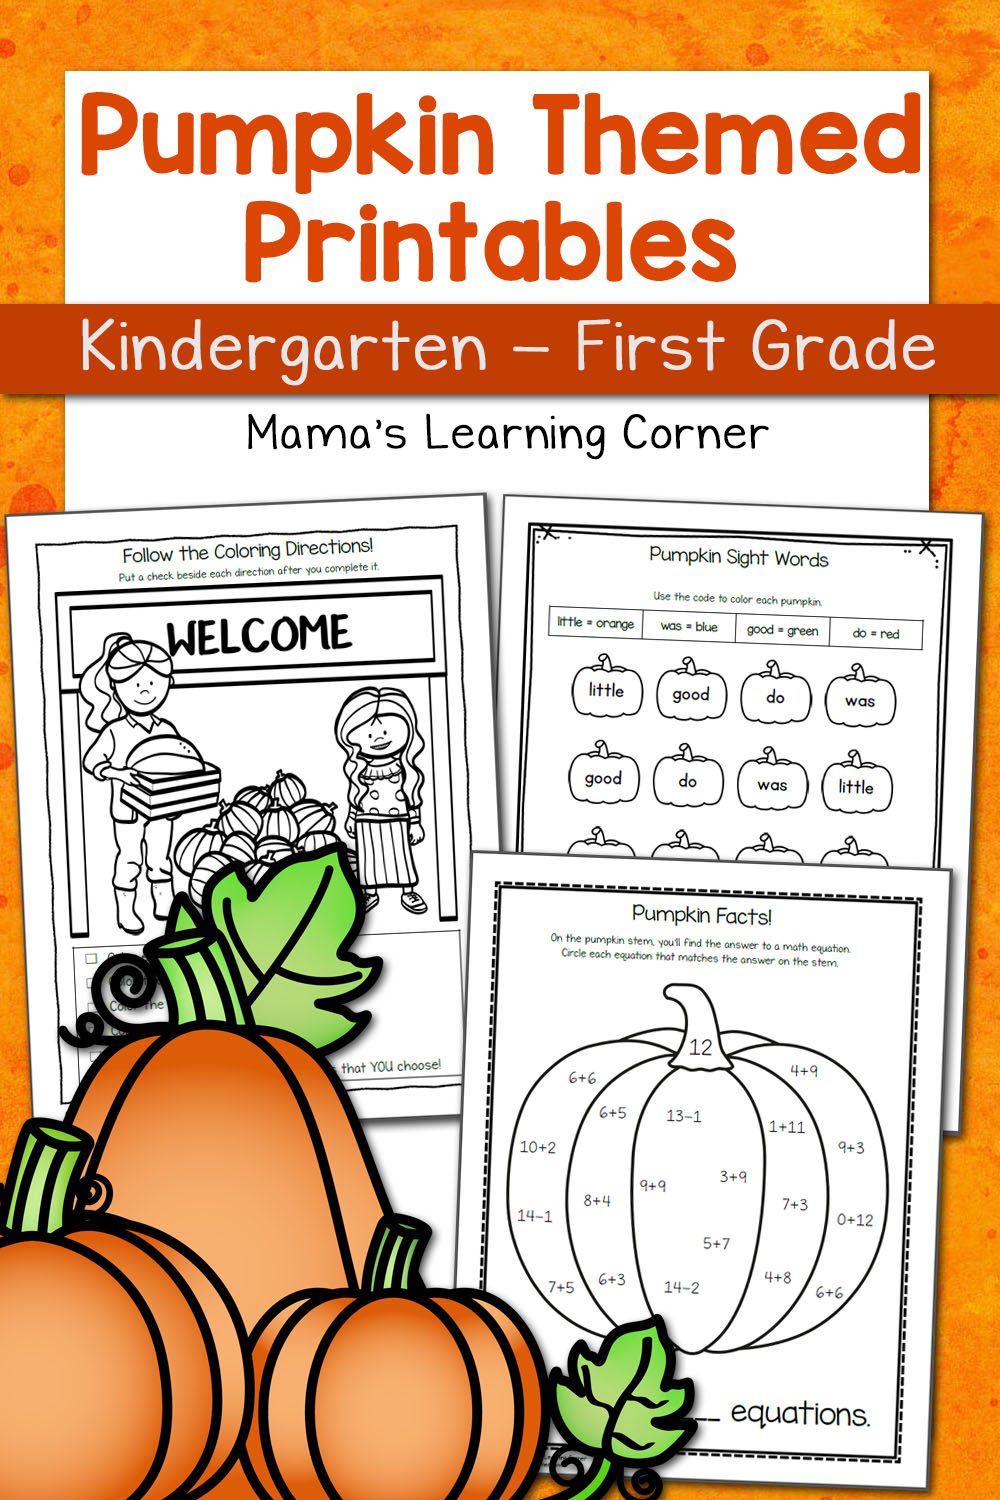 photo regarding Free Pumpkin Worksheets Printable referred to as Pumpkin Worksheets for Kindergarten and Initially Quality - Mamas